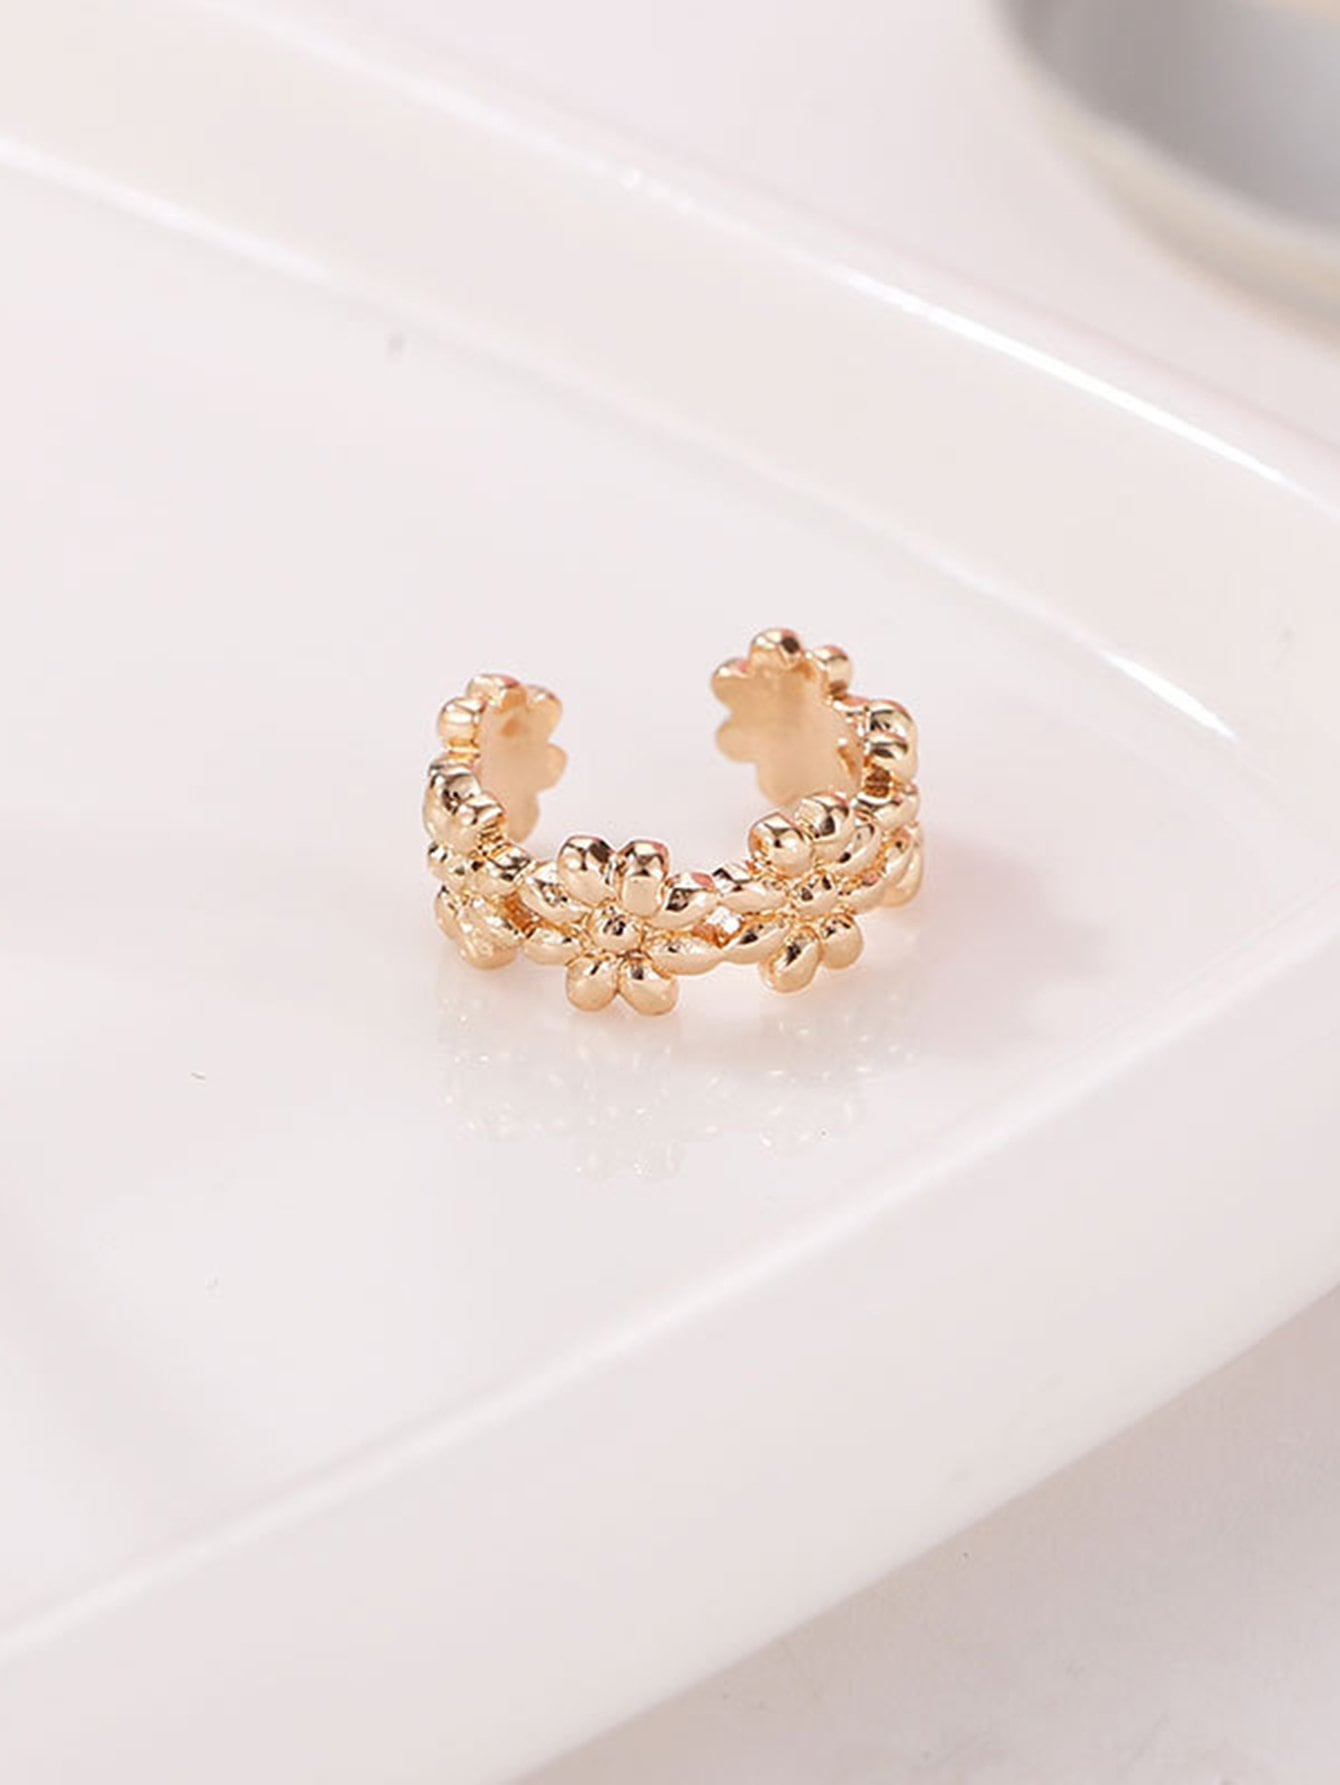 Flower Shaped Metal Ear Cuff 1pcFor Women romwe